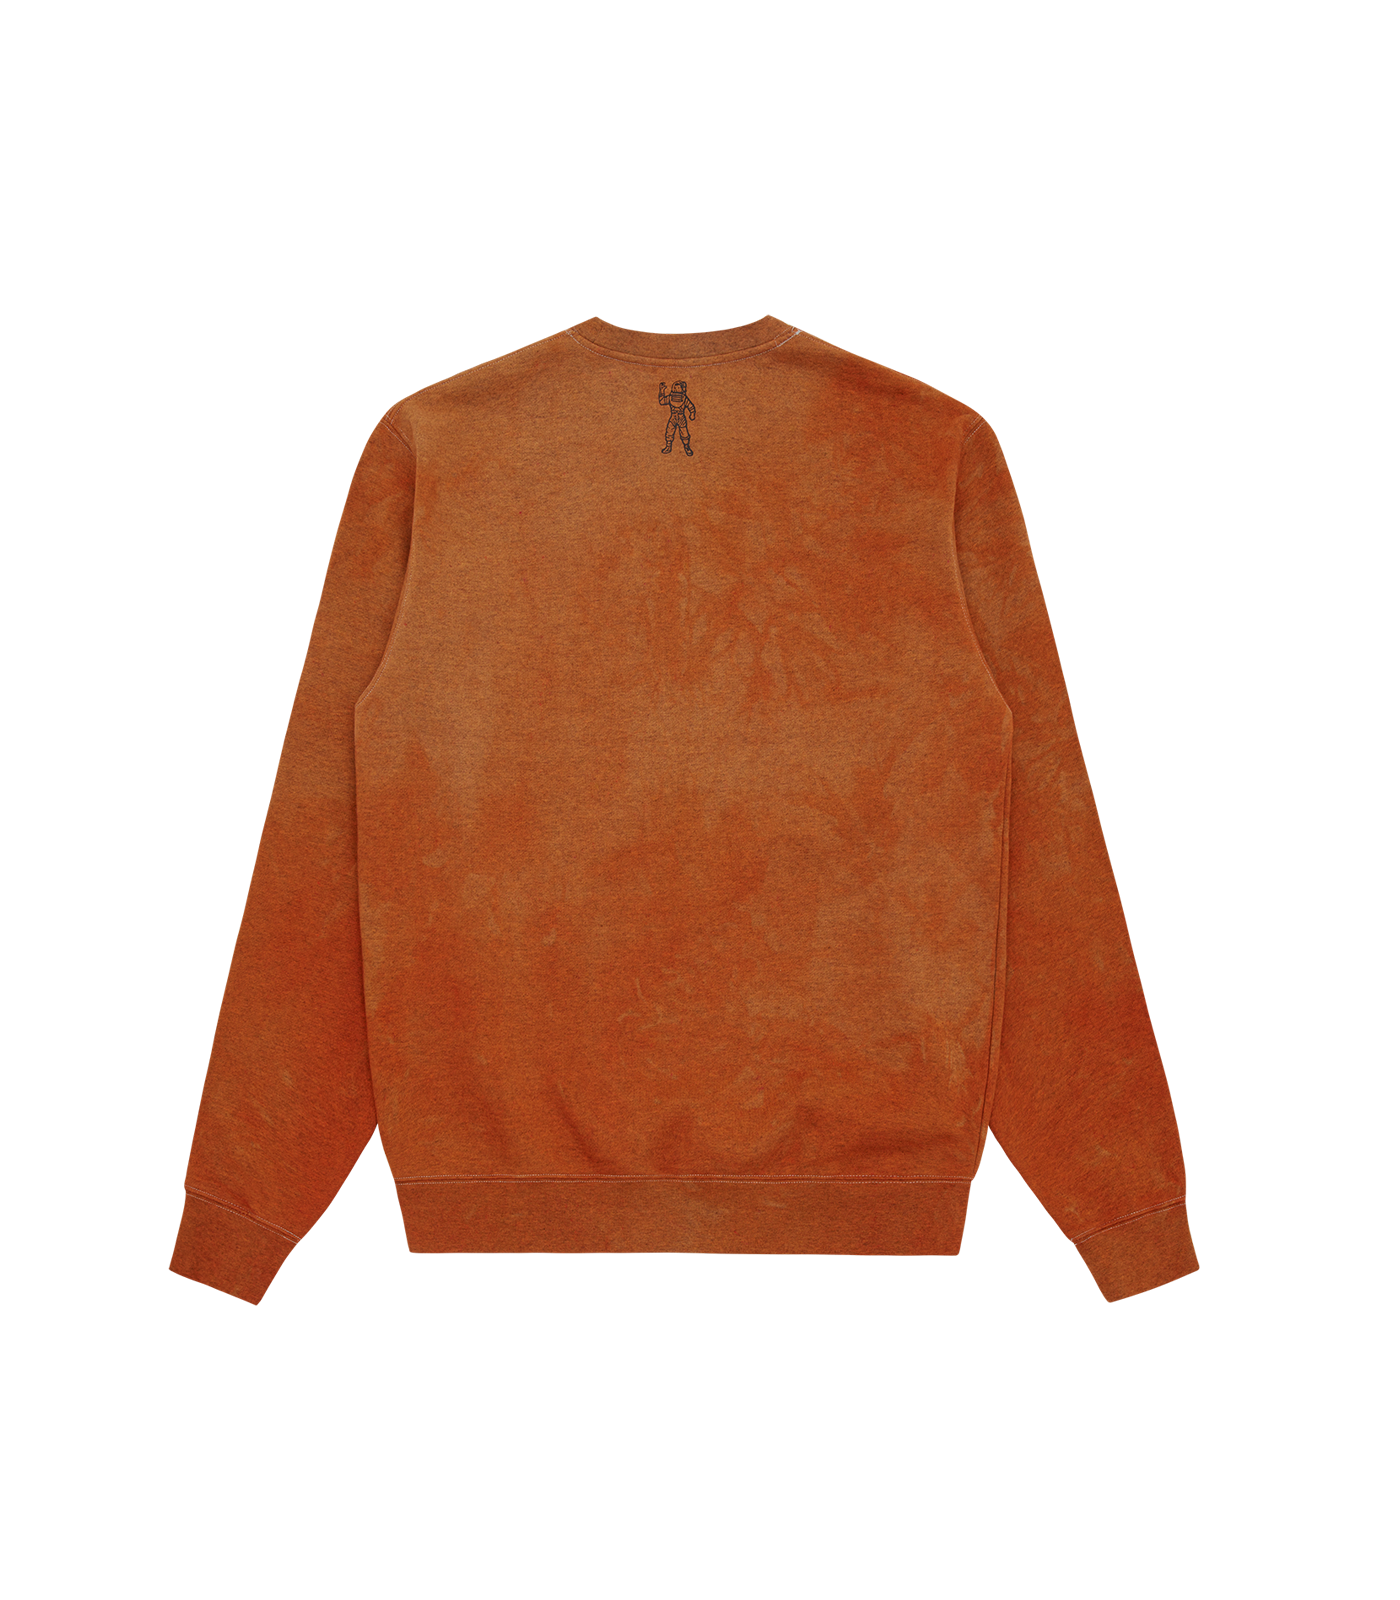 RECYCLED SMALL ARCH LOGO CREWNECK - ORANGE